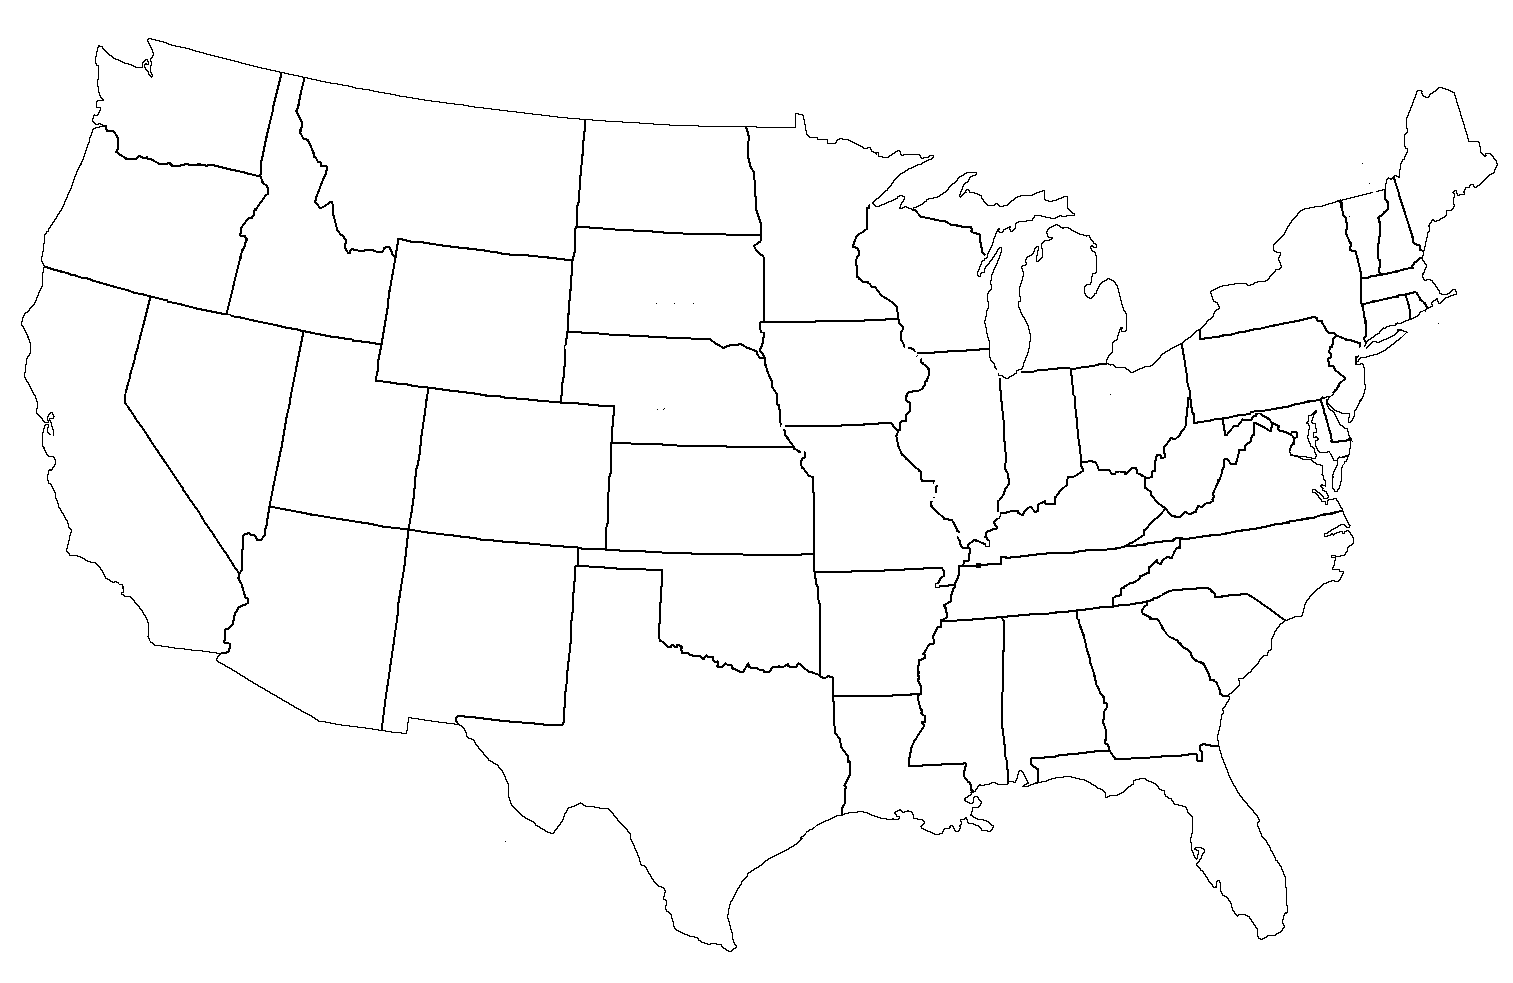 Blank Page Of The United States - Outline map of us states